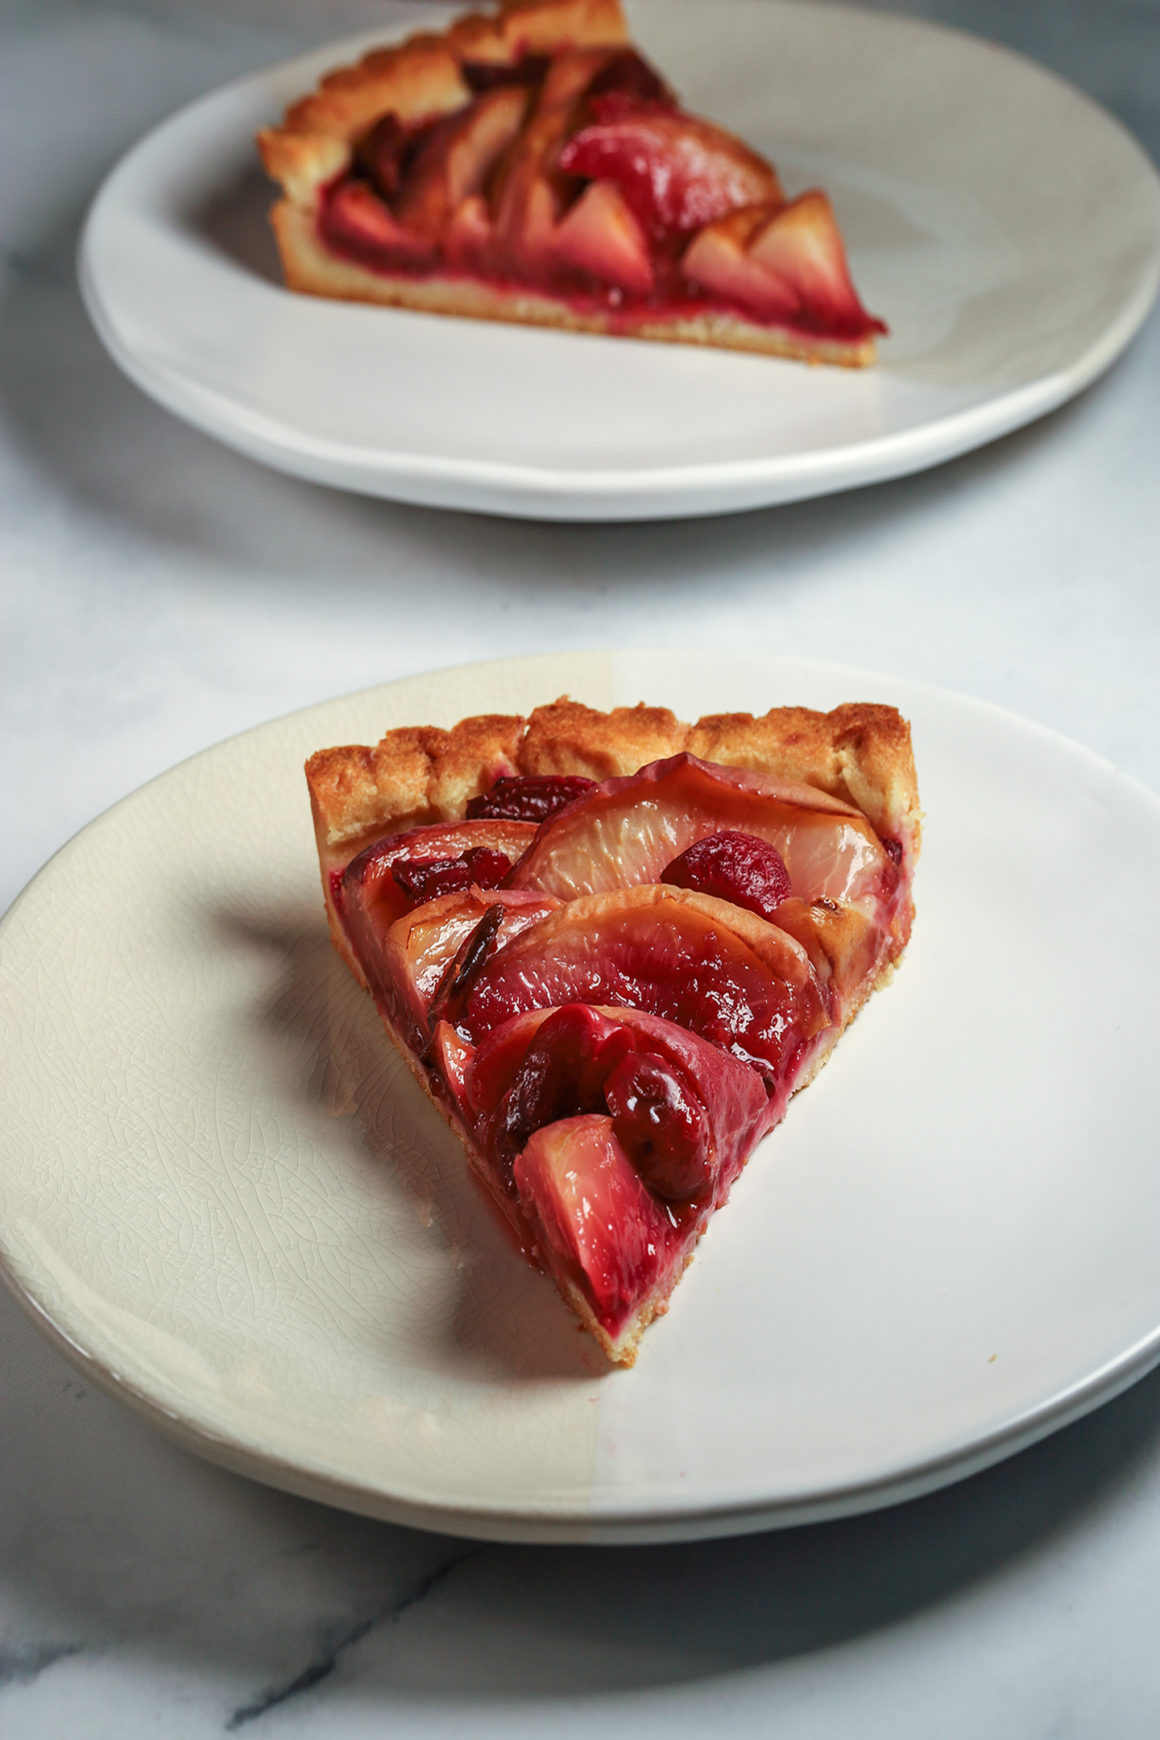 Two Slices of Peach Tart